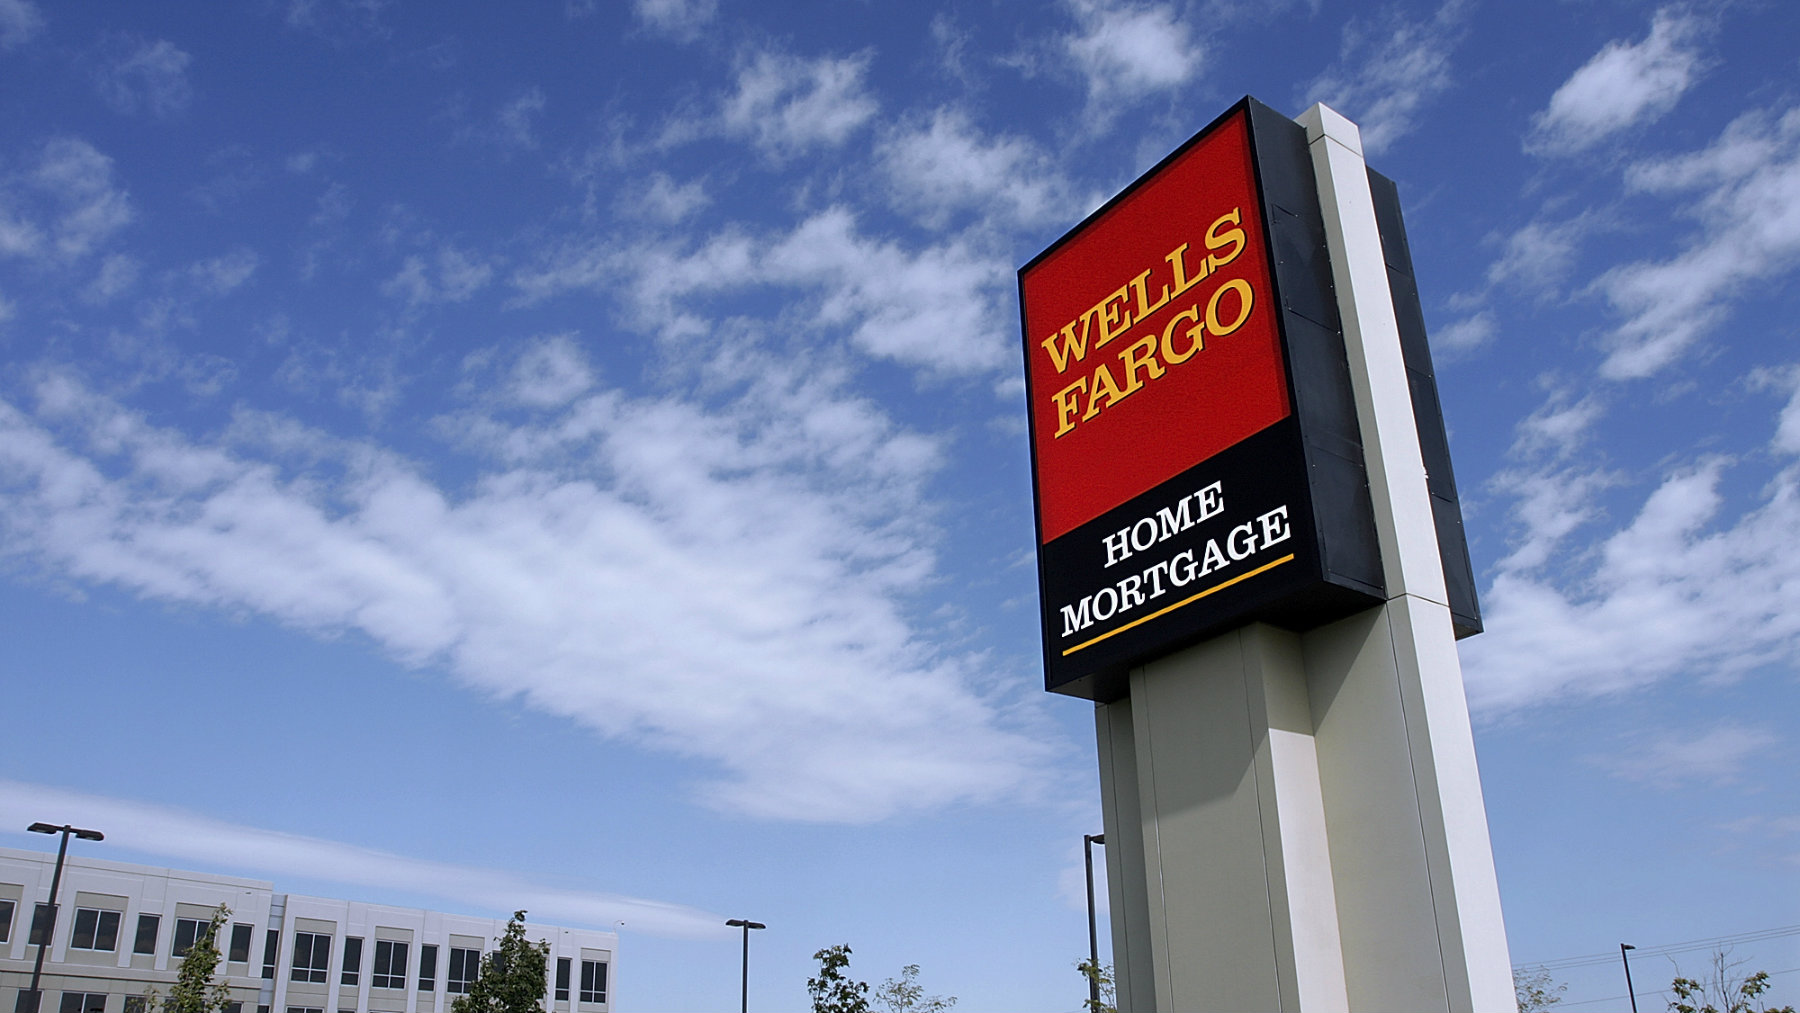 The Wells Fargo logo is displayed outside a home mortgage office in Springfield, Illinois.